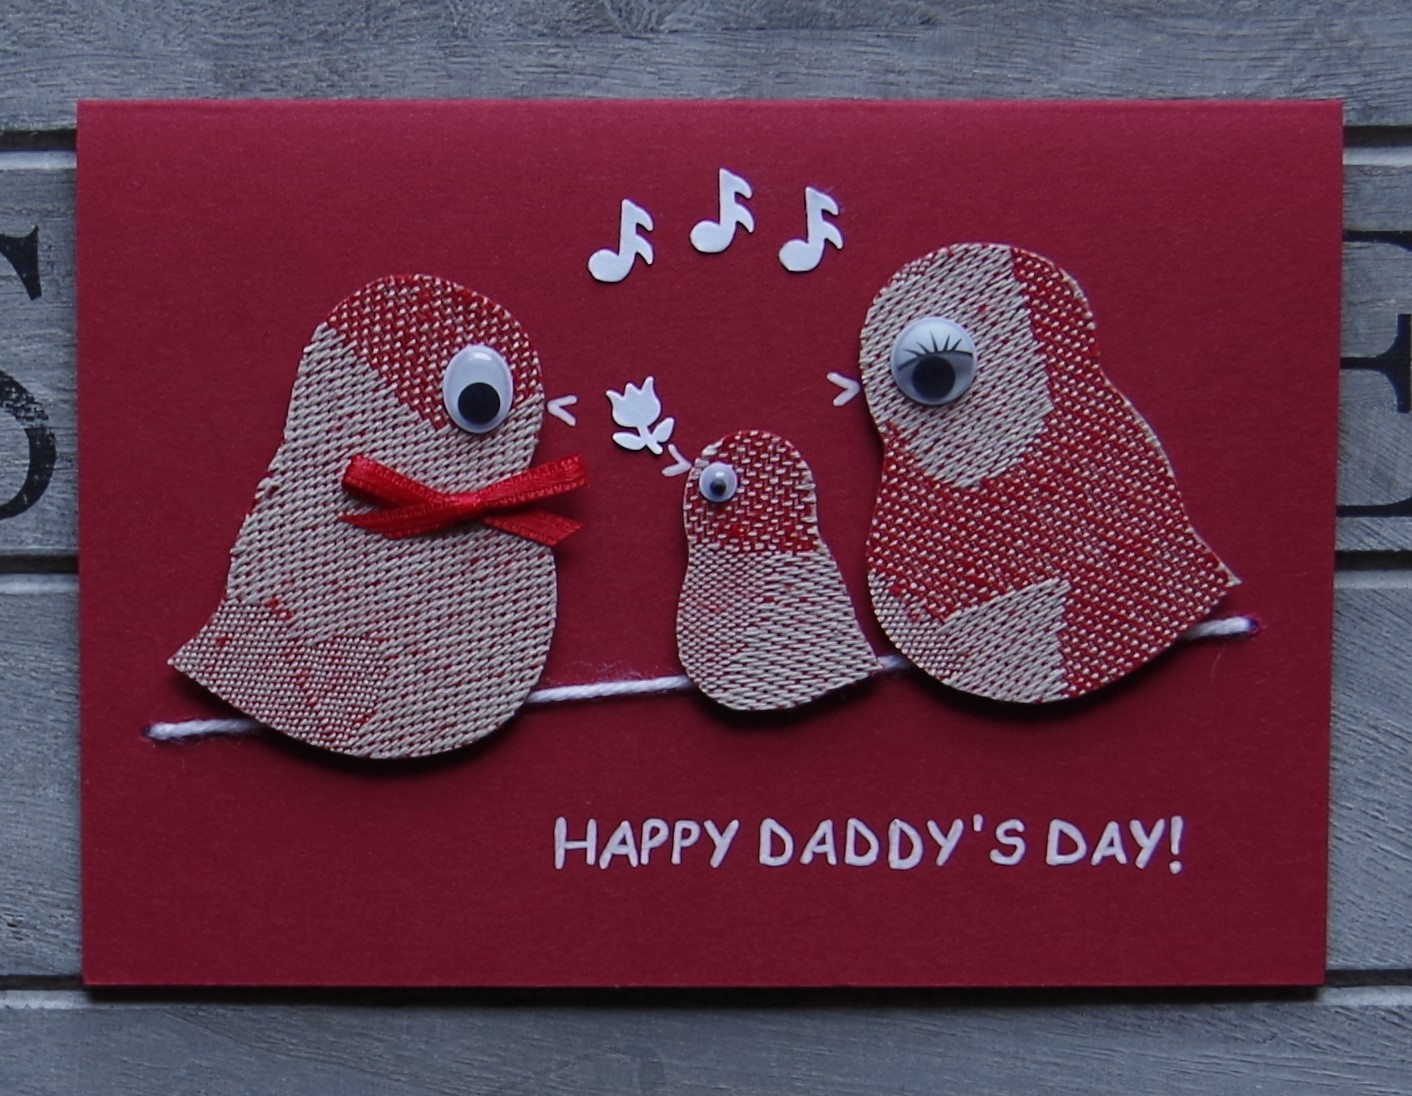 HAPPY DADDY'S DAY!